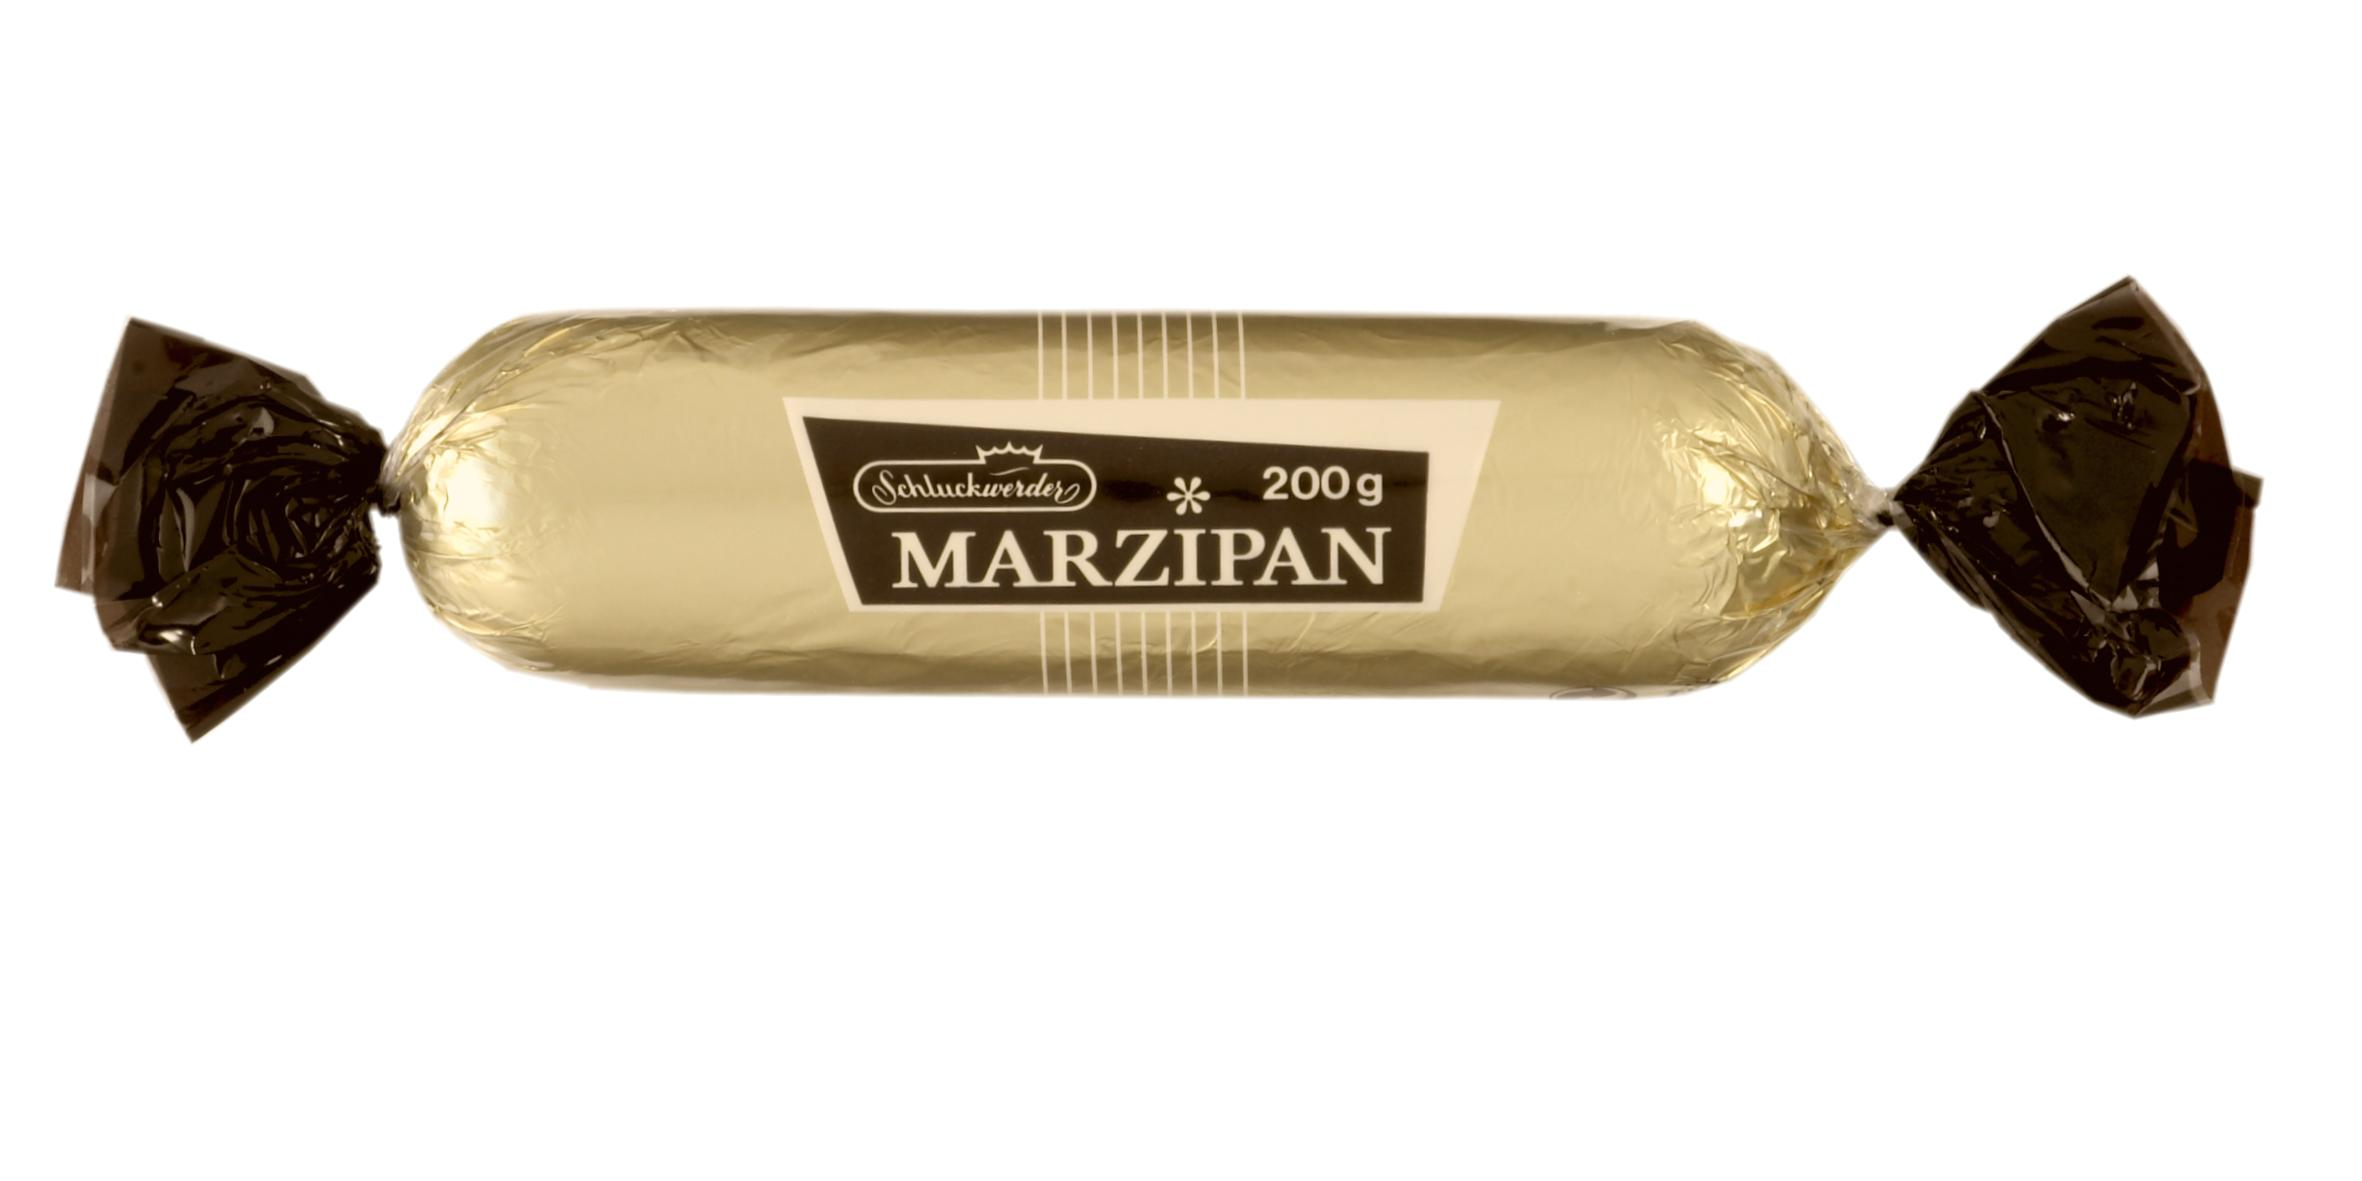 Schluckwerder Chocolate Covered Marzipan Bar 200g.